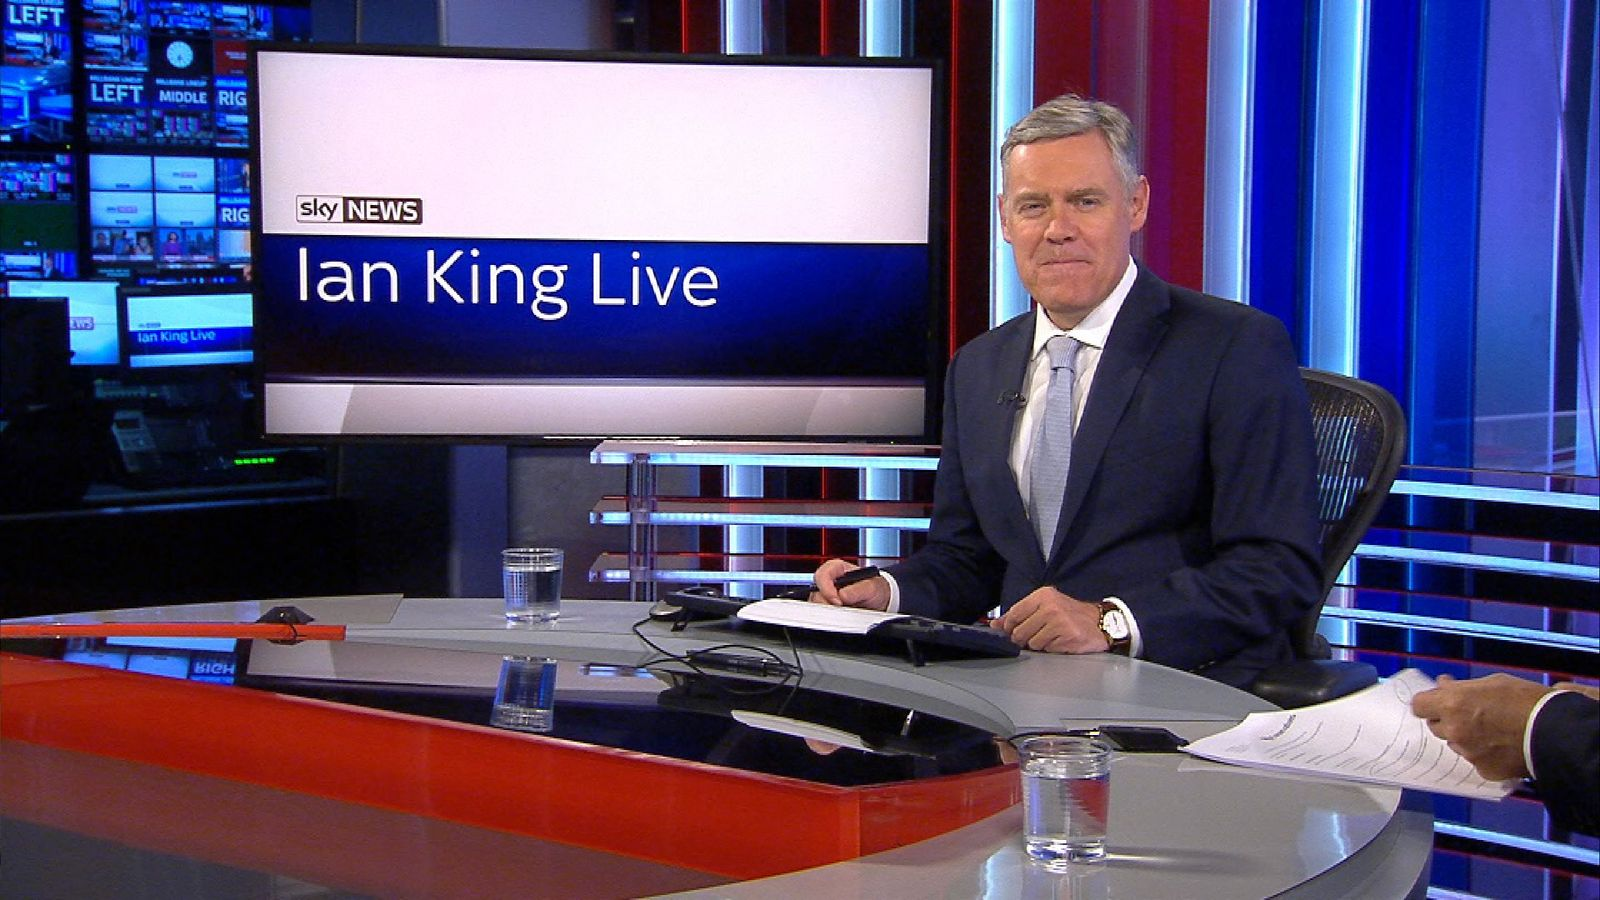 Ian King presents Ian King Live